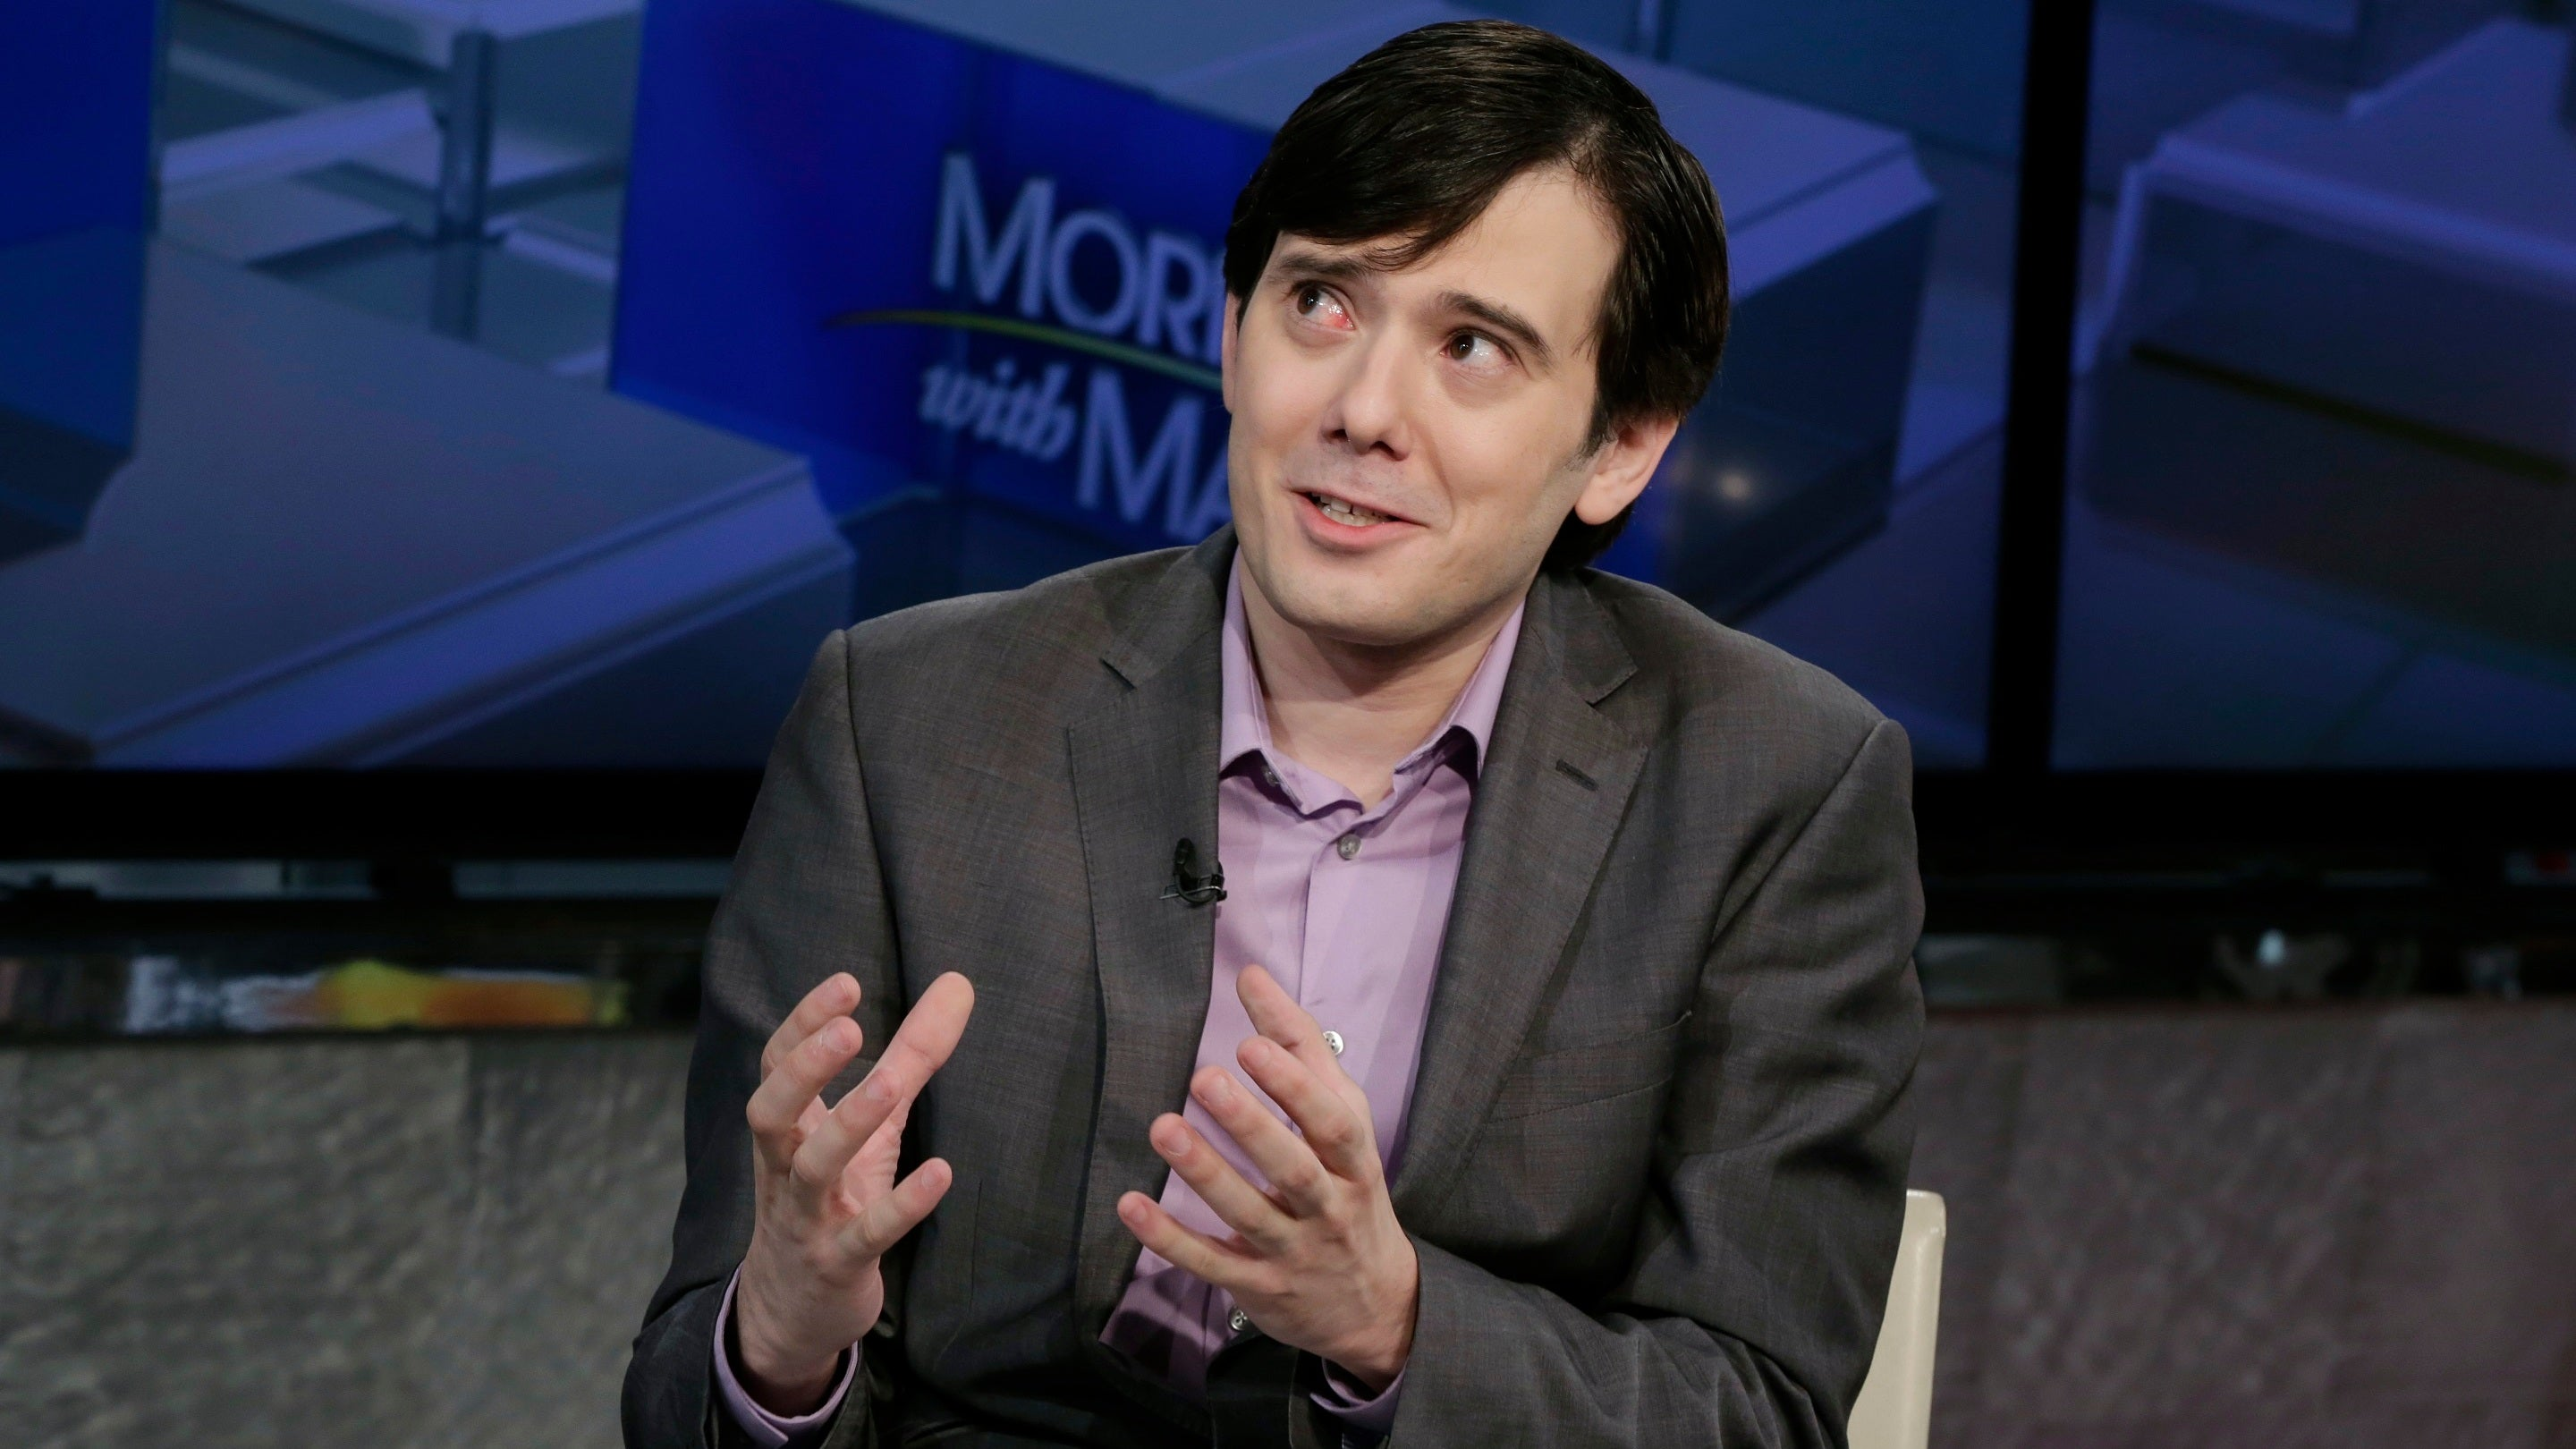 Martin Shkreli May Have To Give His Wu-Tang Album To The Feds